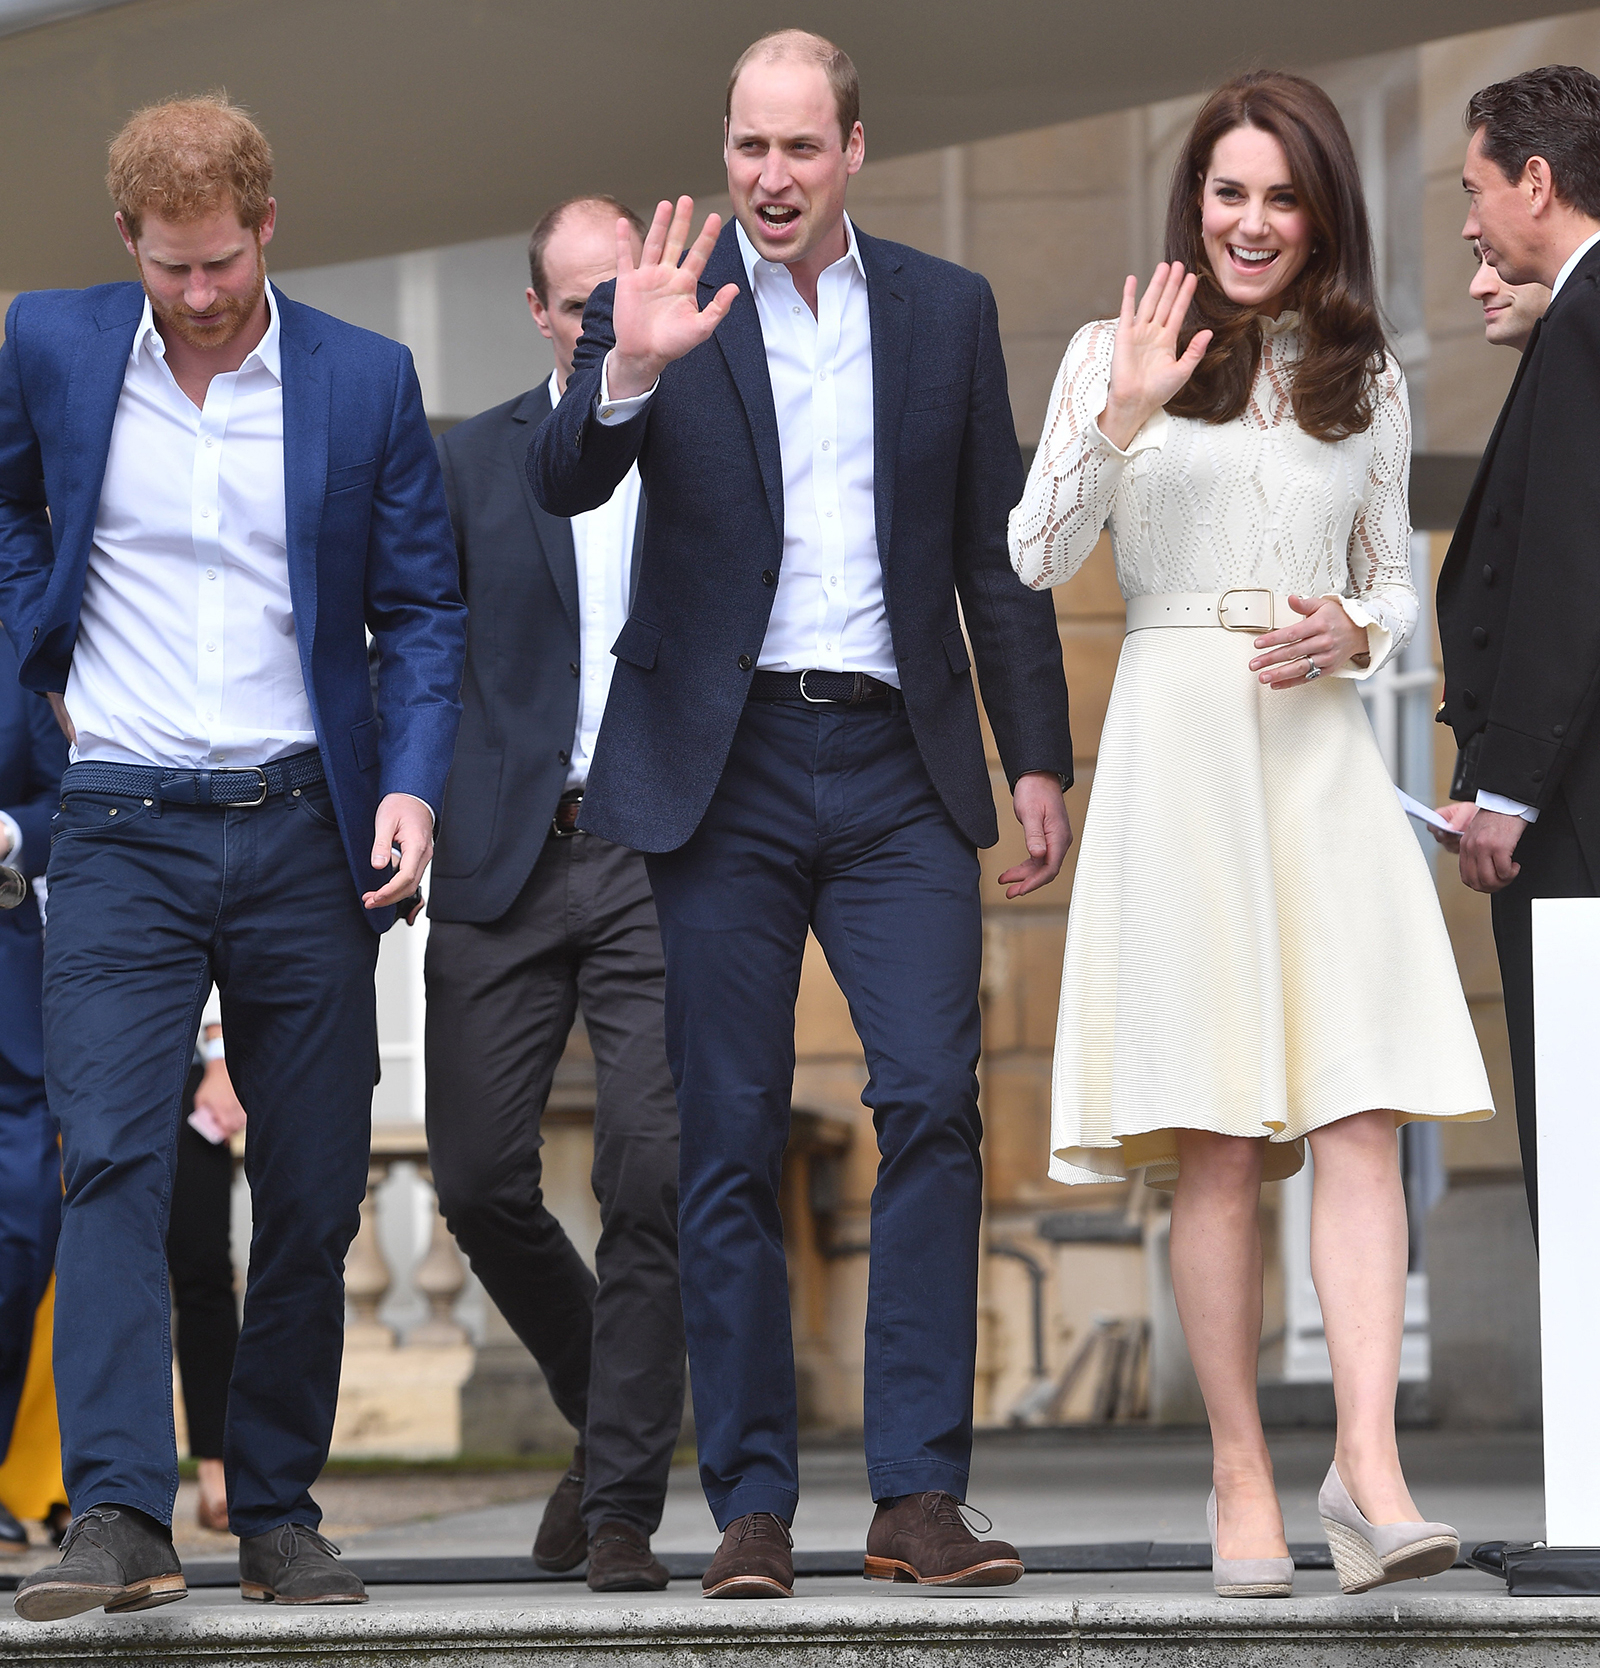 Prince Harry and William with Princess Kate